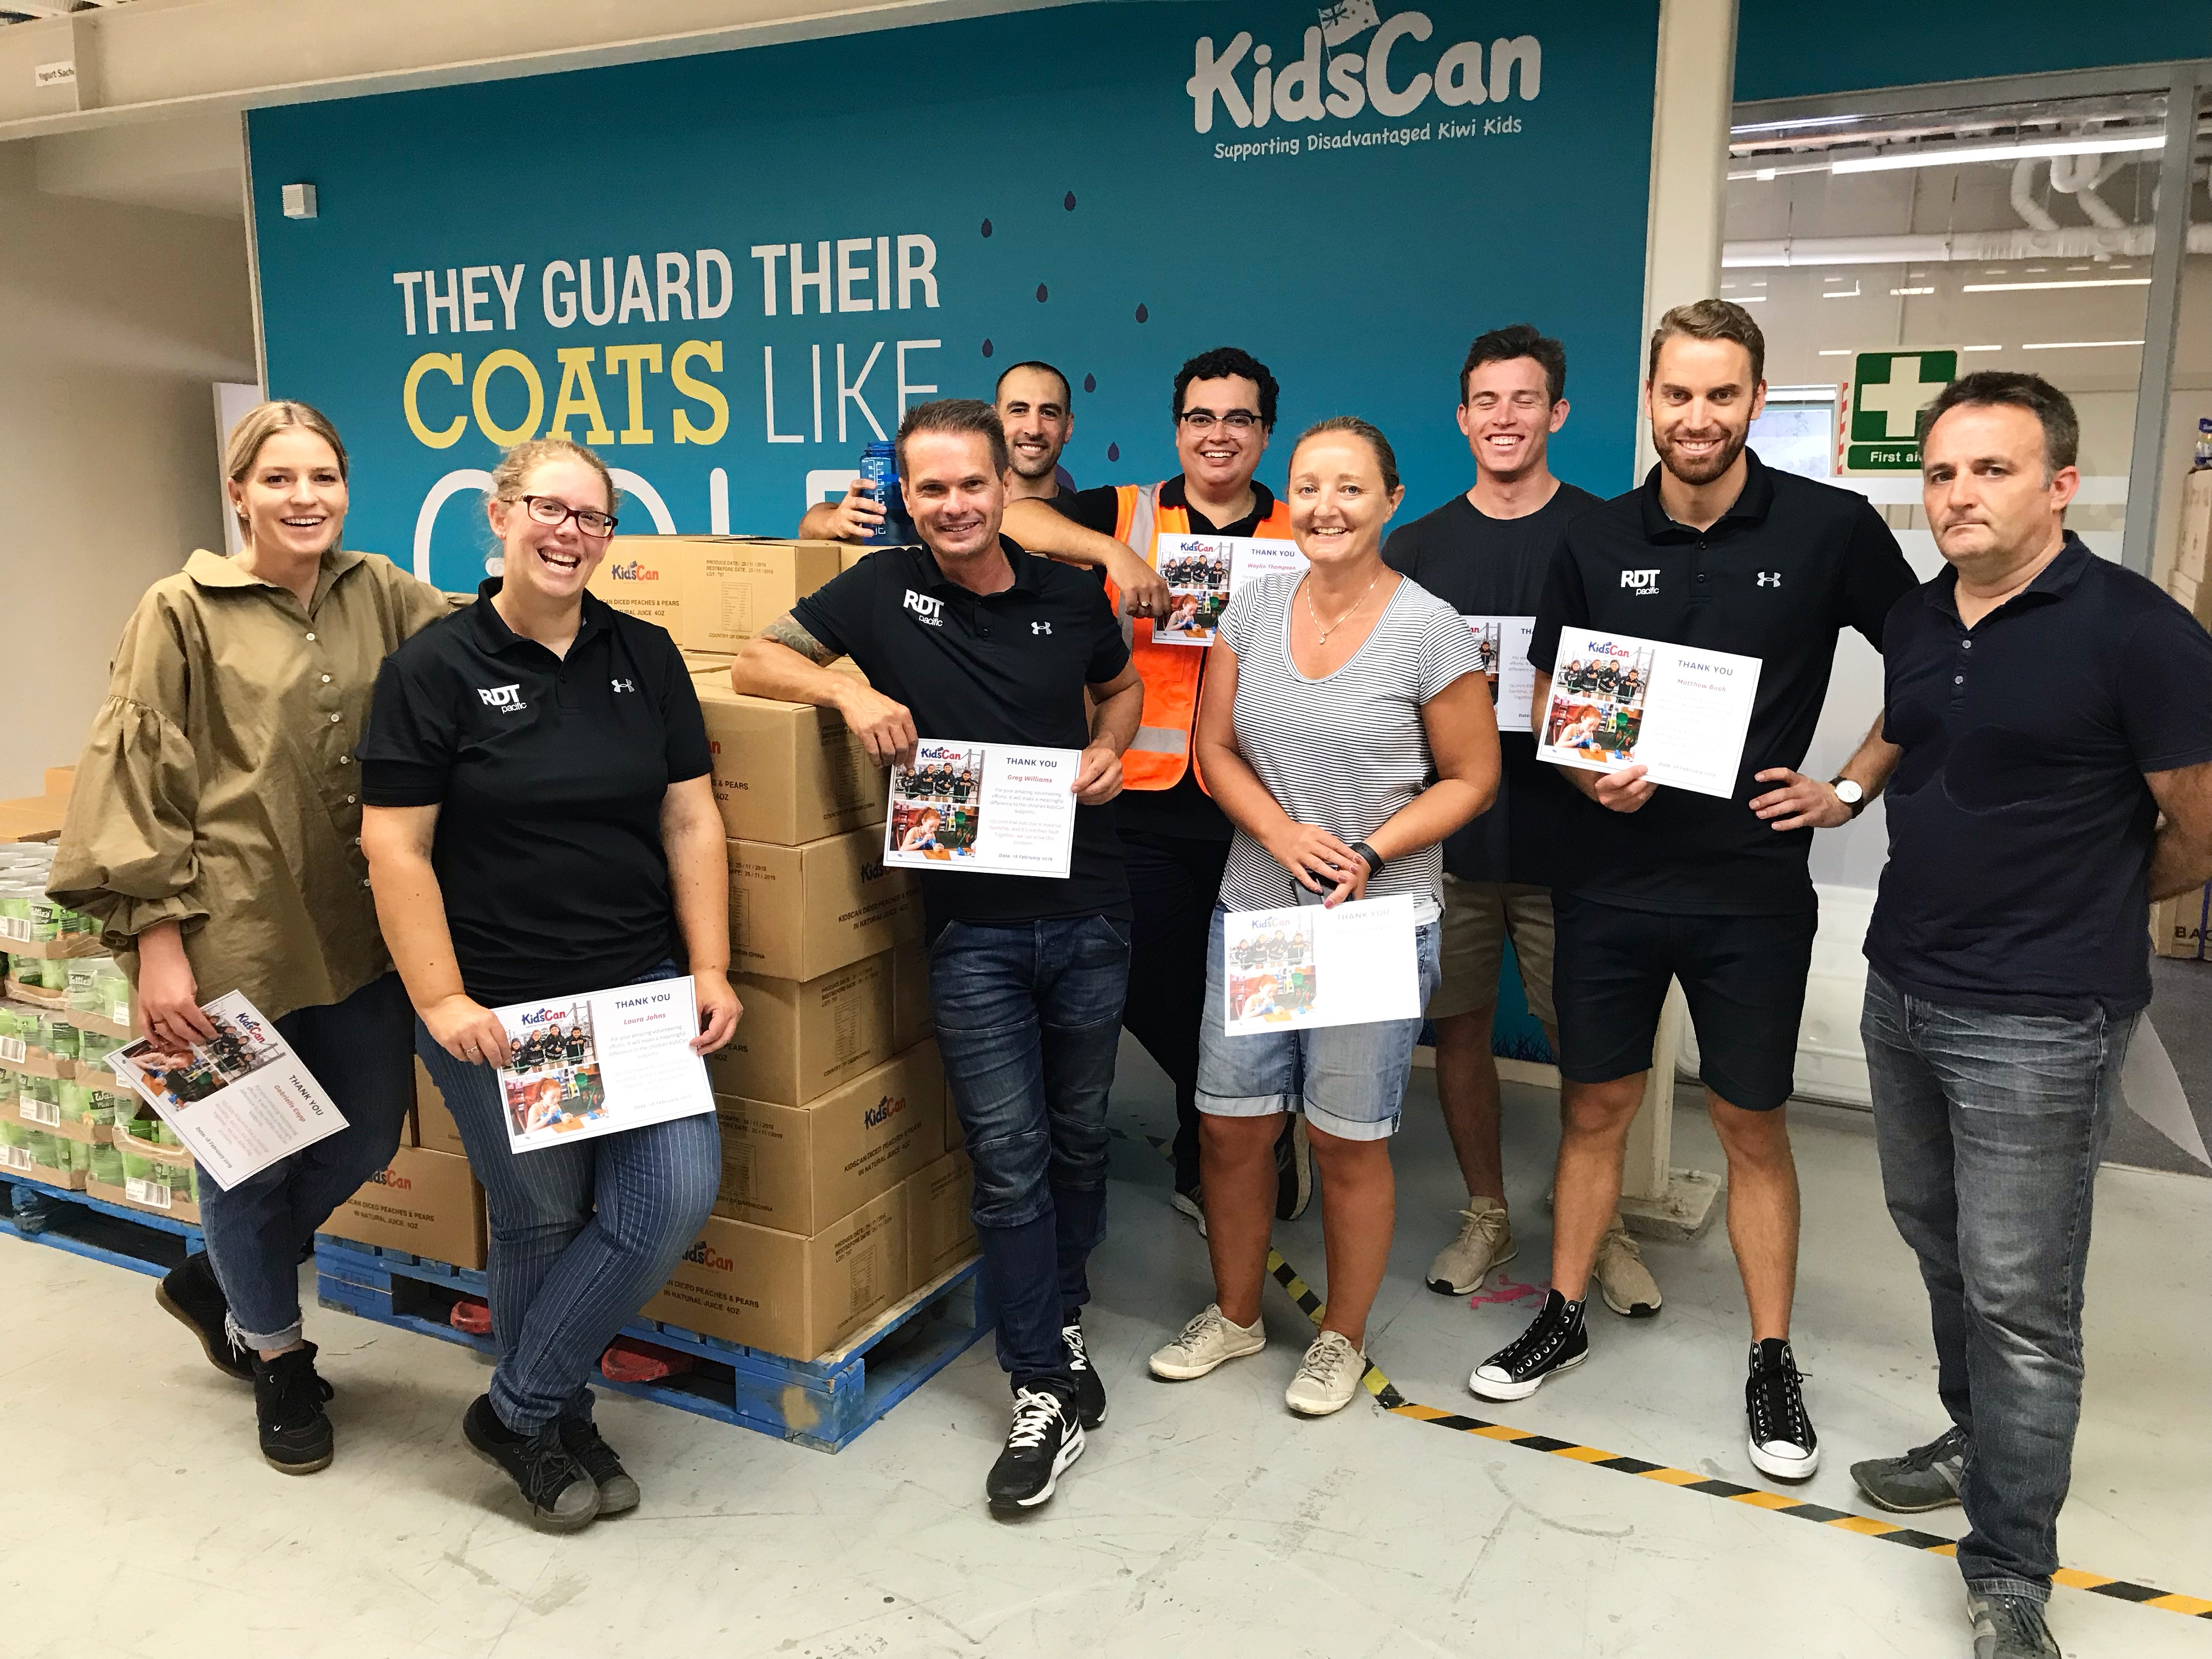 KidsCan Charity Corporate Social Responsibility